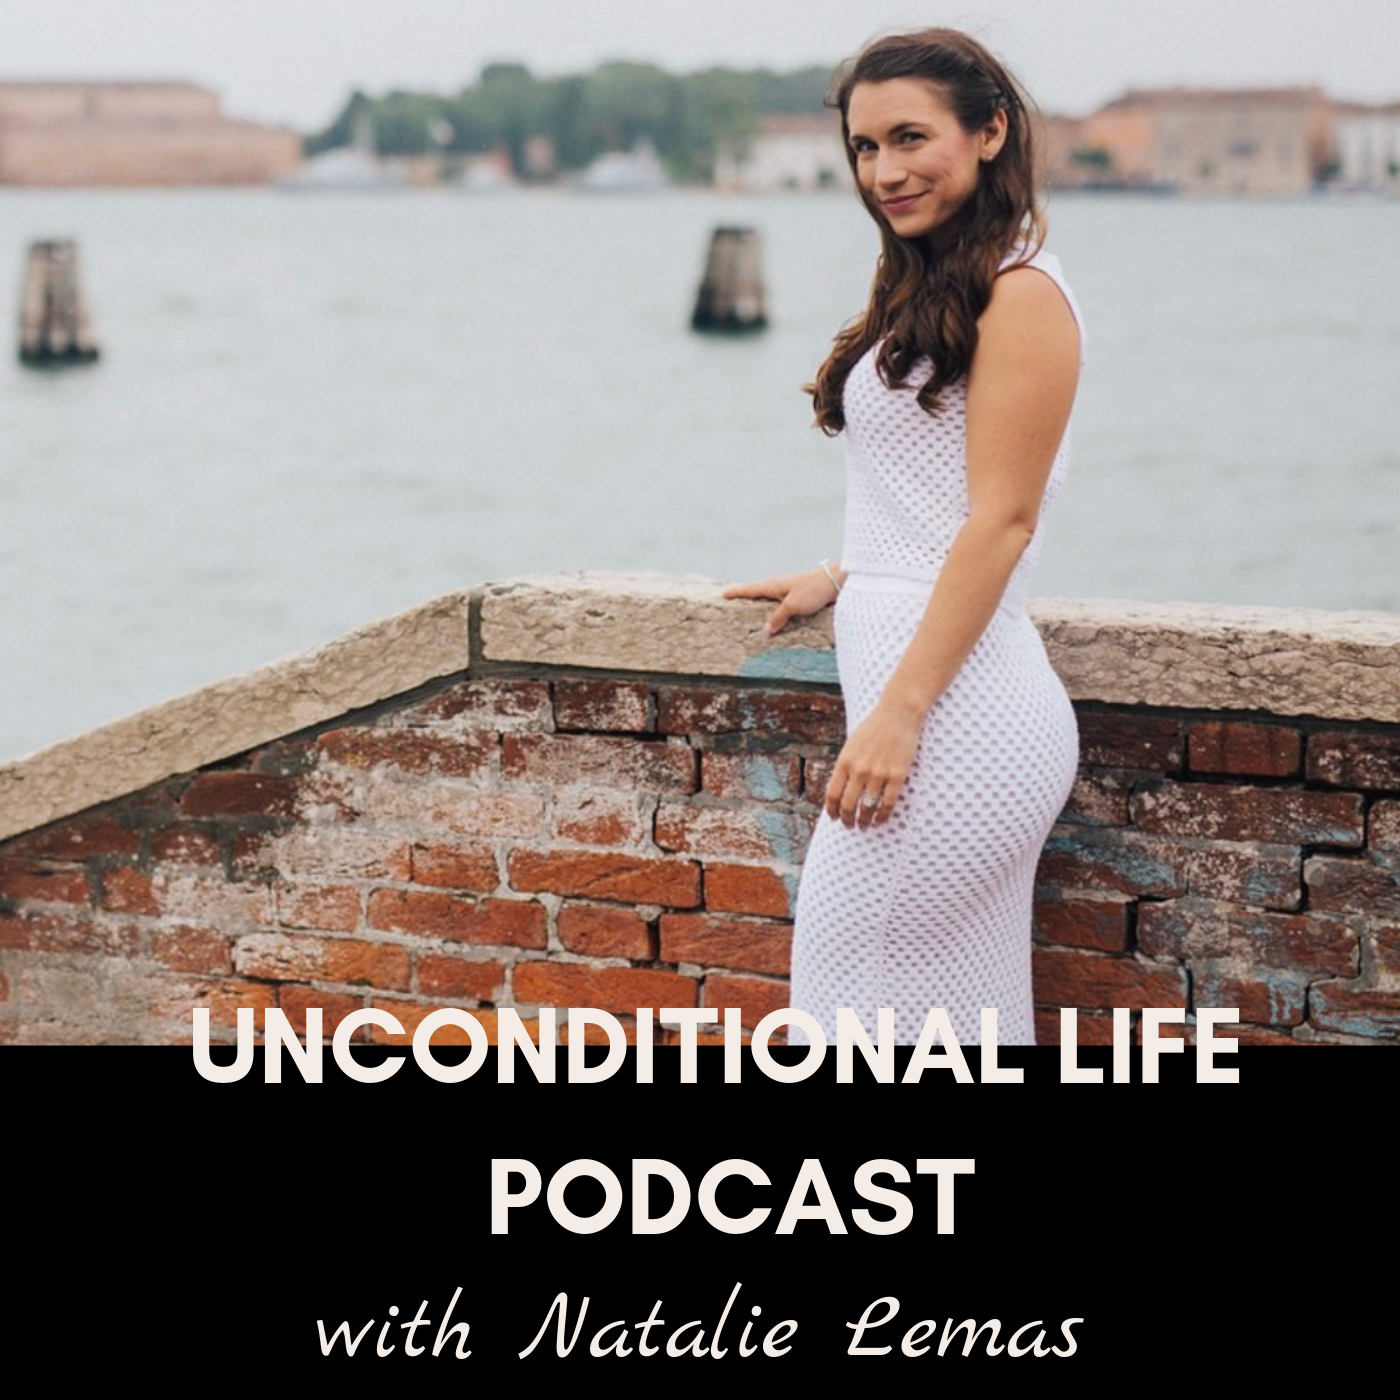 Unconditional Life Podcast